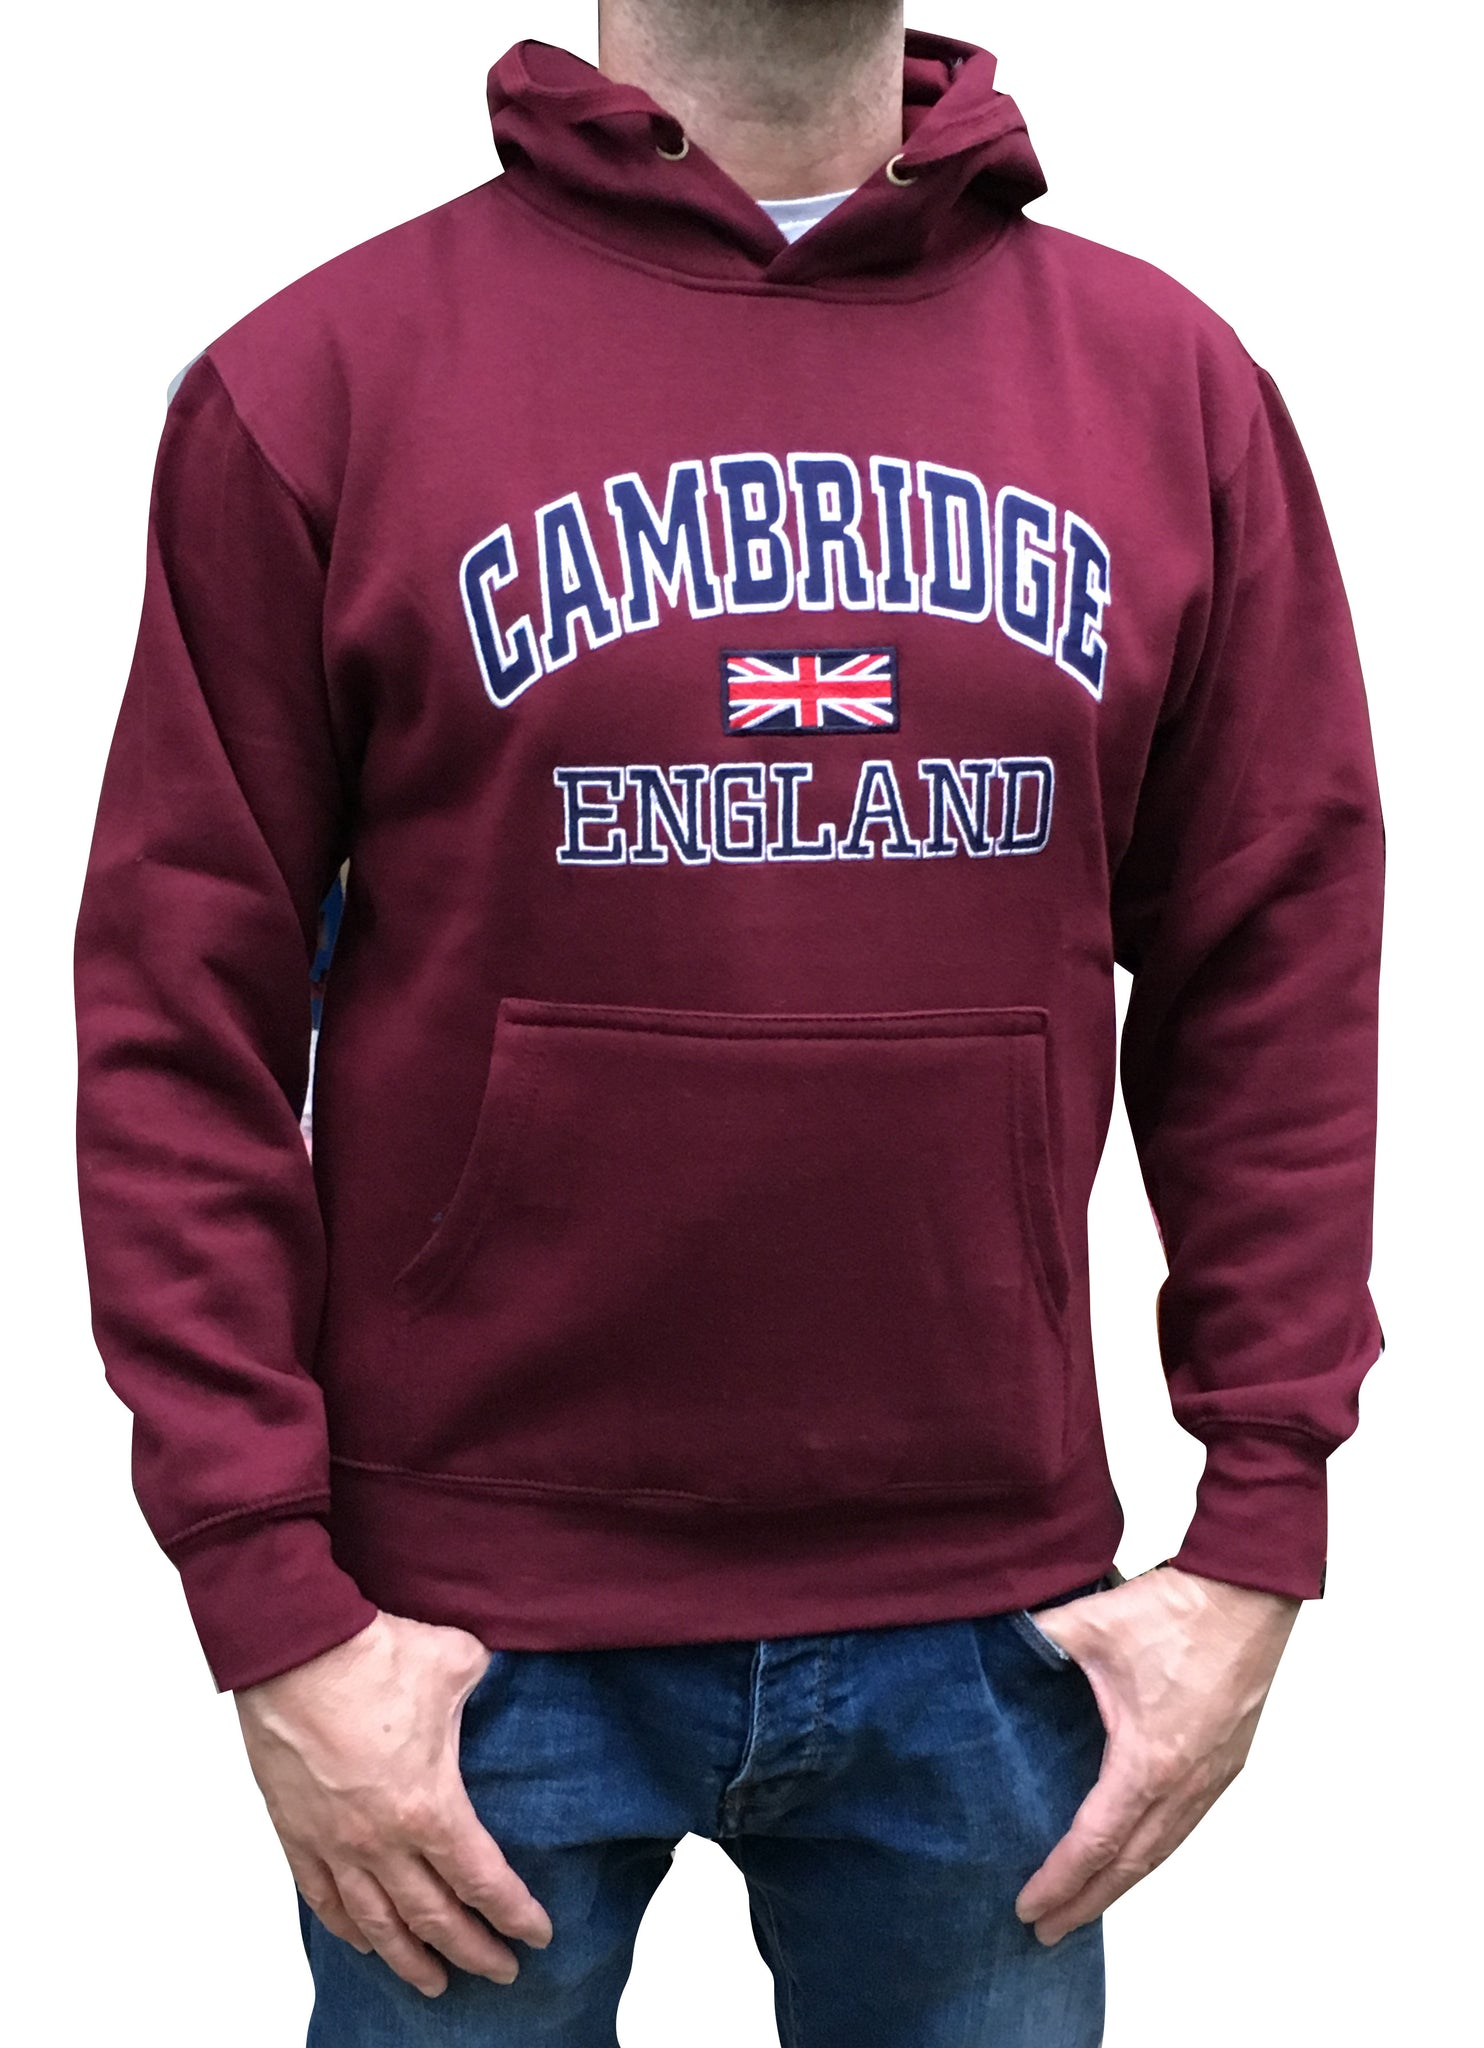 Cambridge England Hoody - Hoody from the Famous City of Cambridge